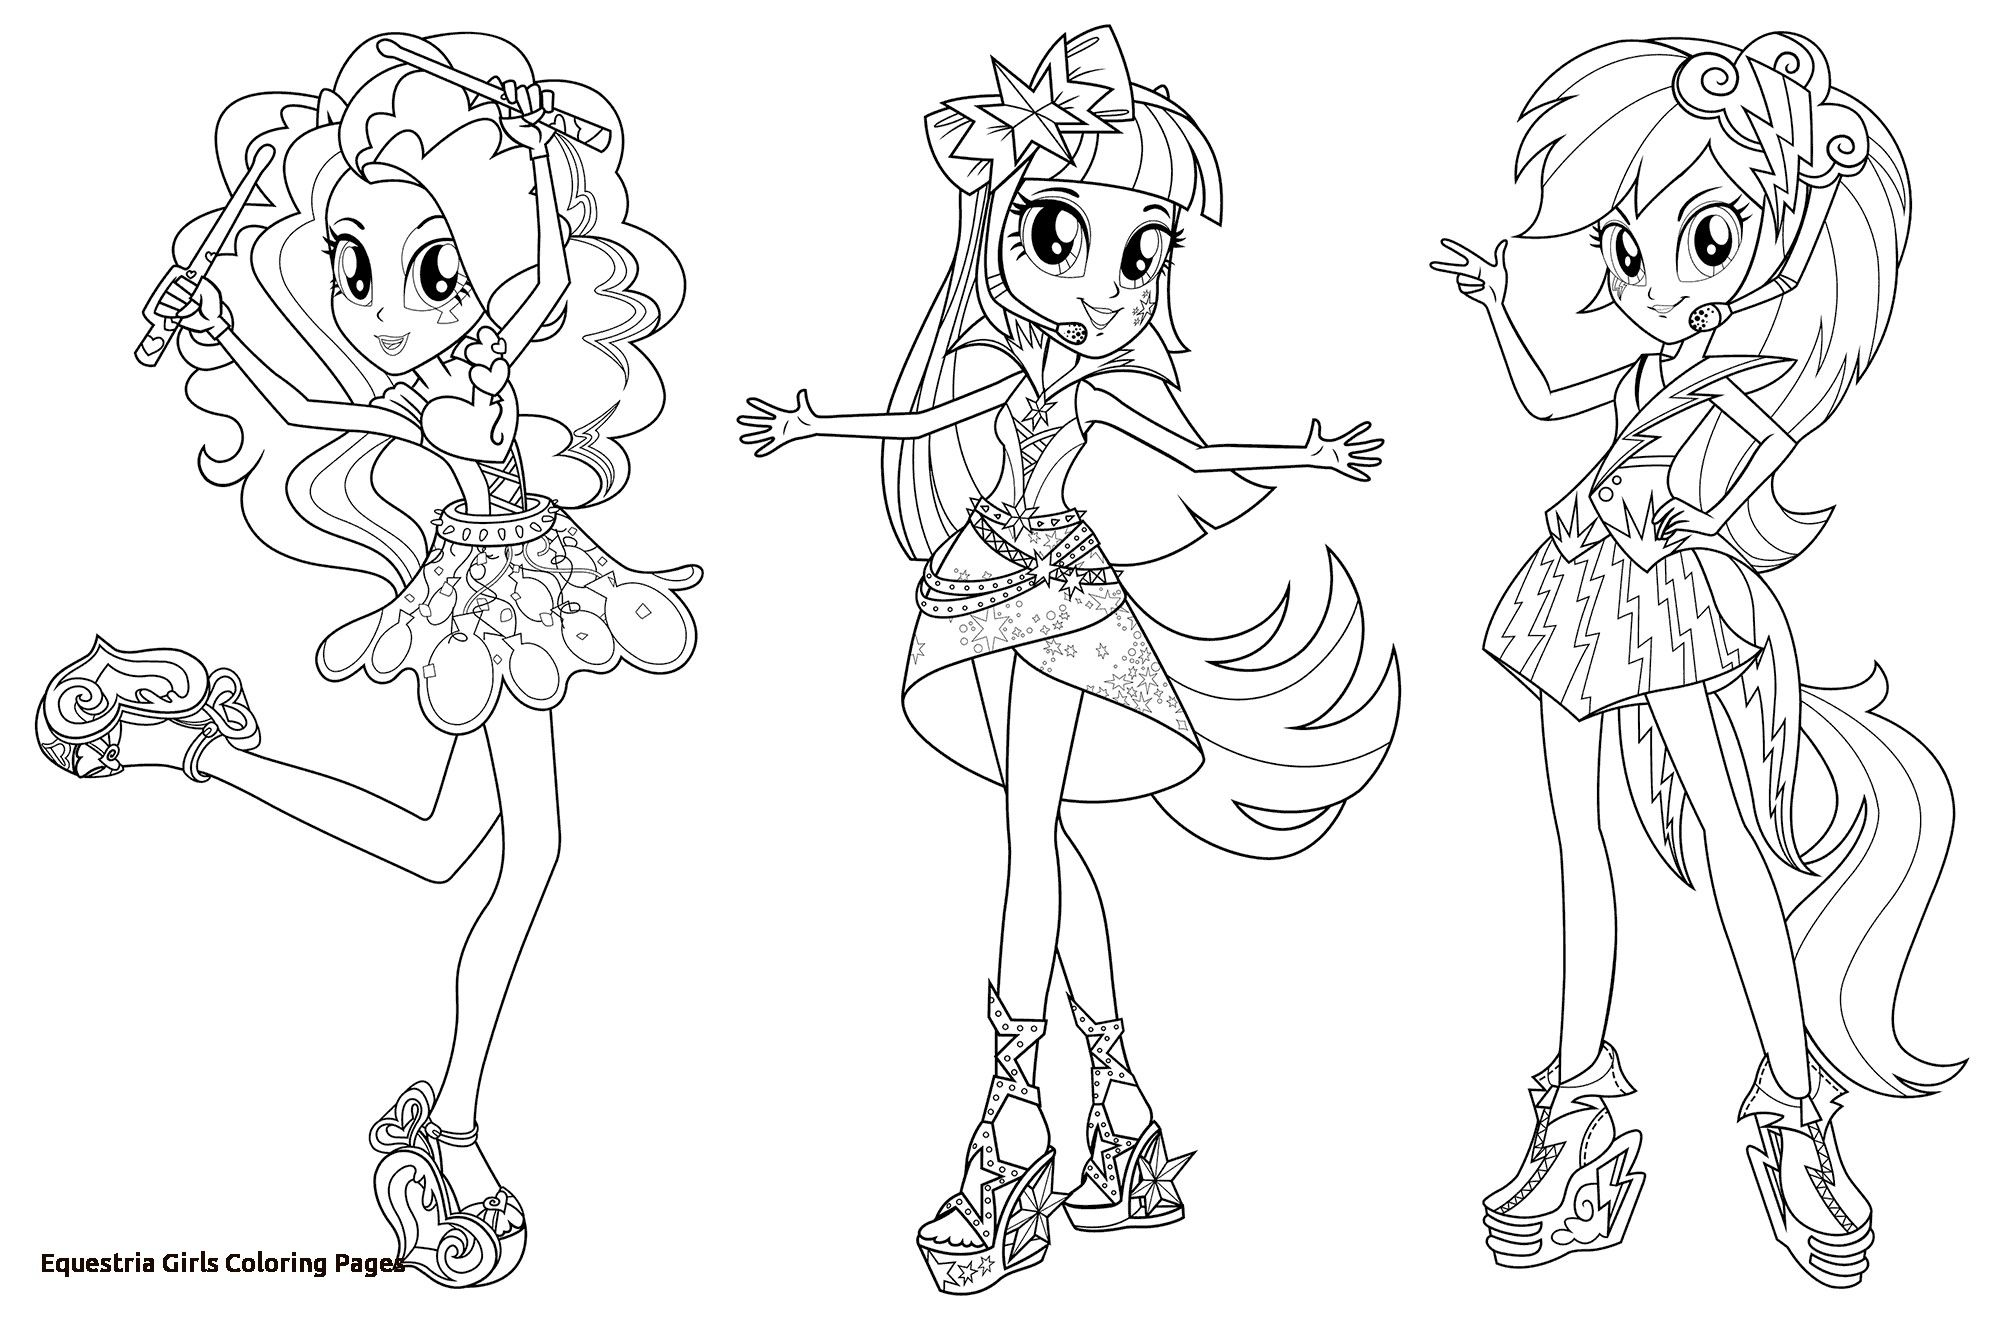 Mlp Equestria Girls Rainbow Rocks Coloring Pages In 2020 My Little Pony Coloring Coloring Pages For Girls Coloring Pages